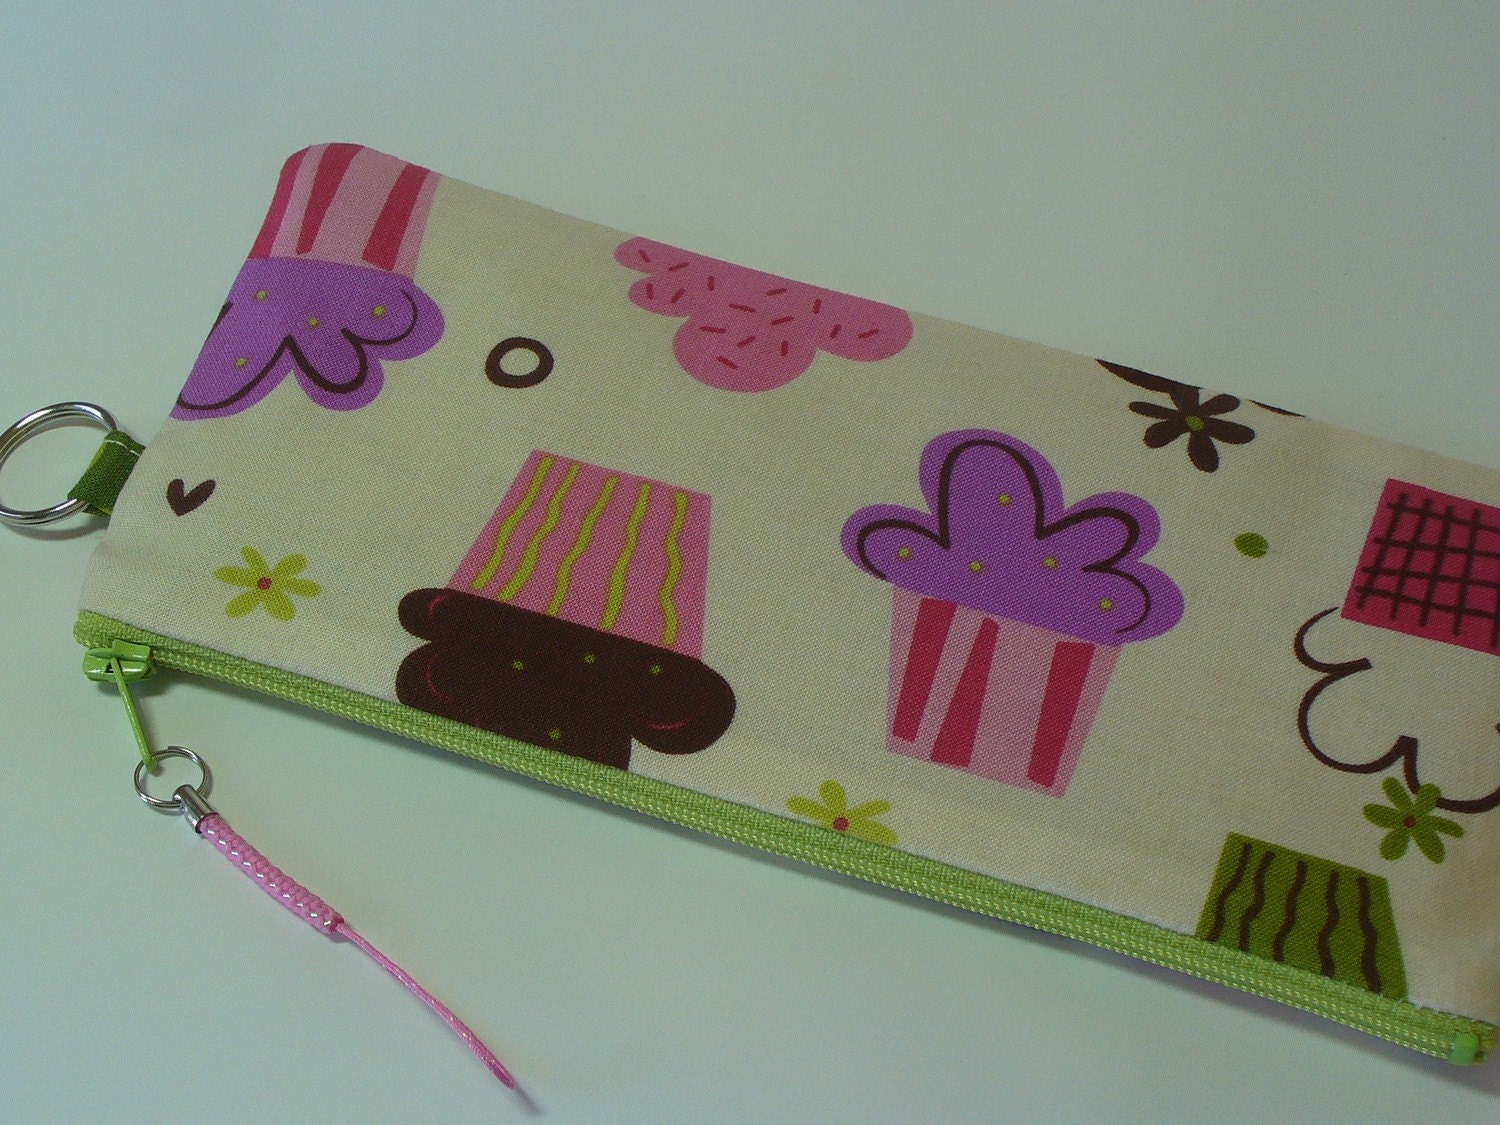 Pencil Zipper Pouch - Yummy CupCakes on Cream Background